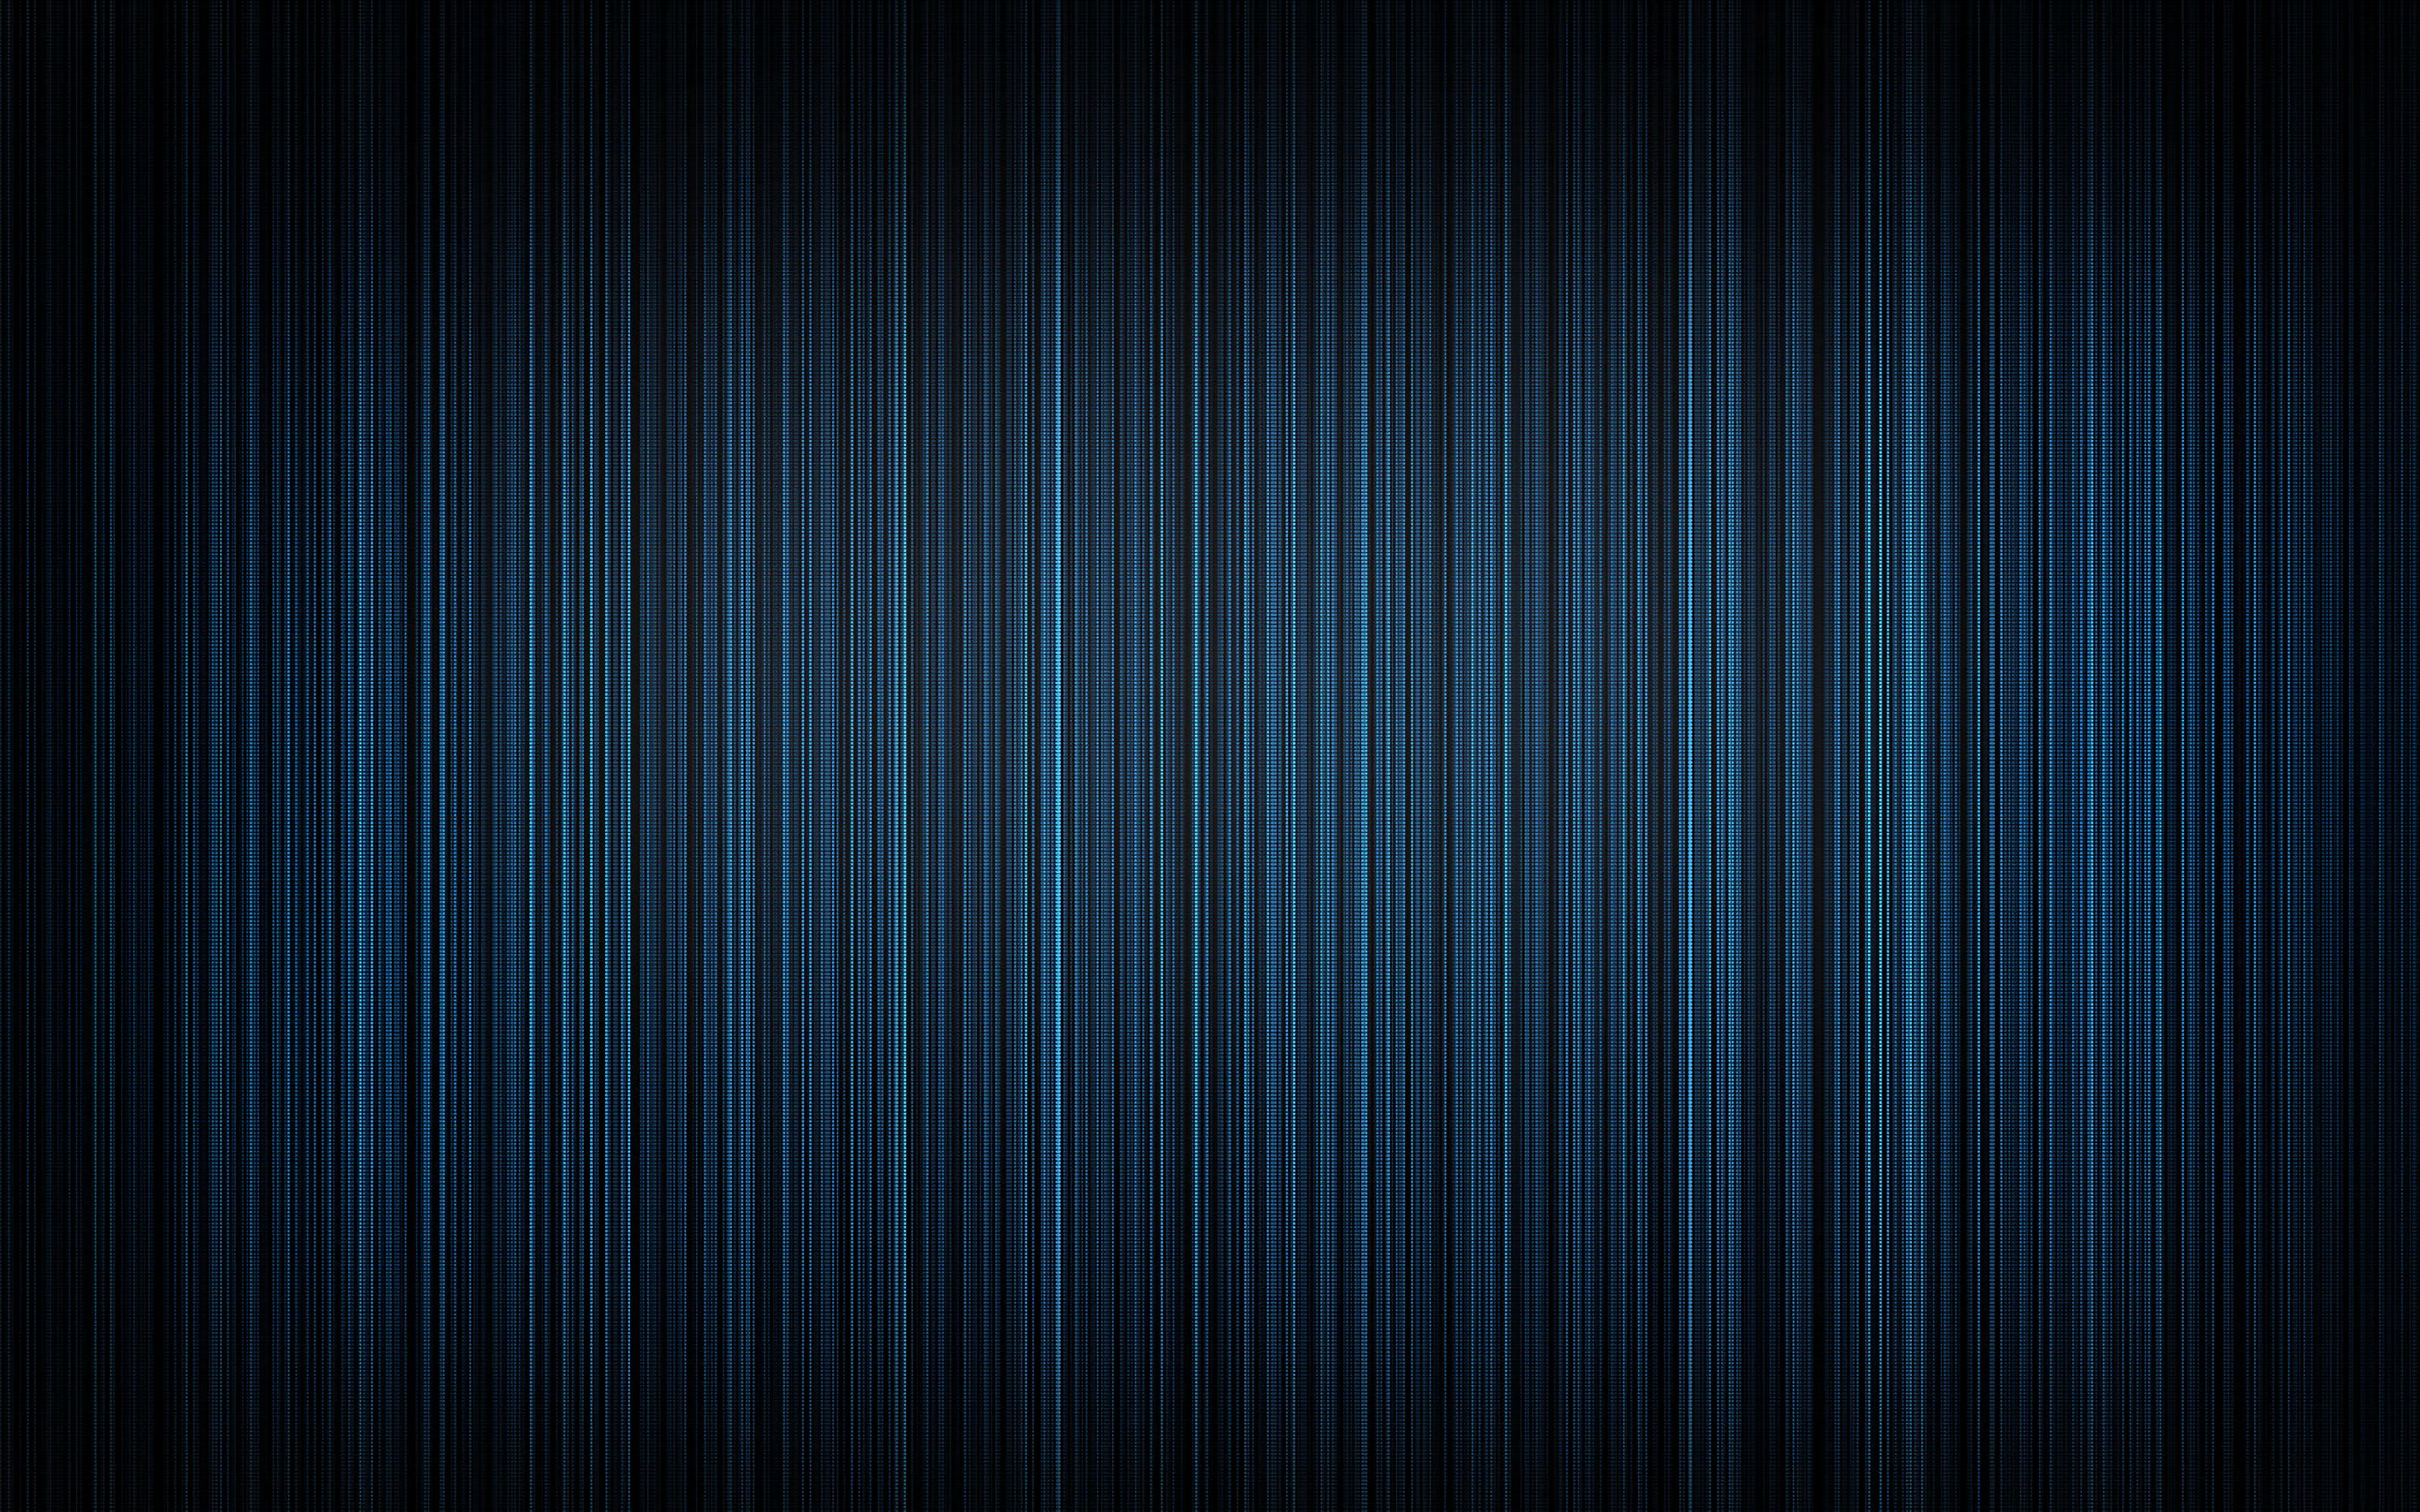 59132 download wallpaper Dark, Lines, Textures, Texture, Stripes, Streaks, Vertical screensavers and pictures for free